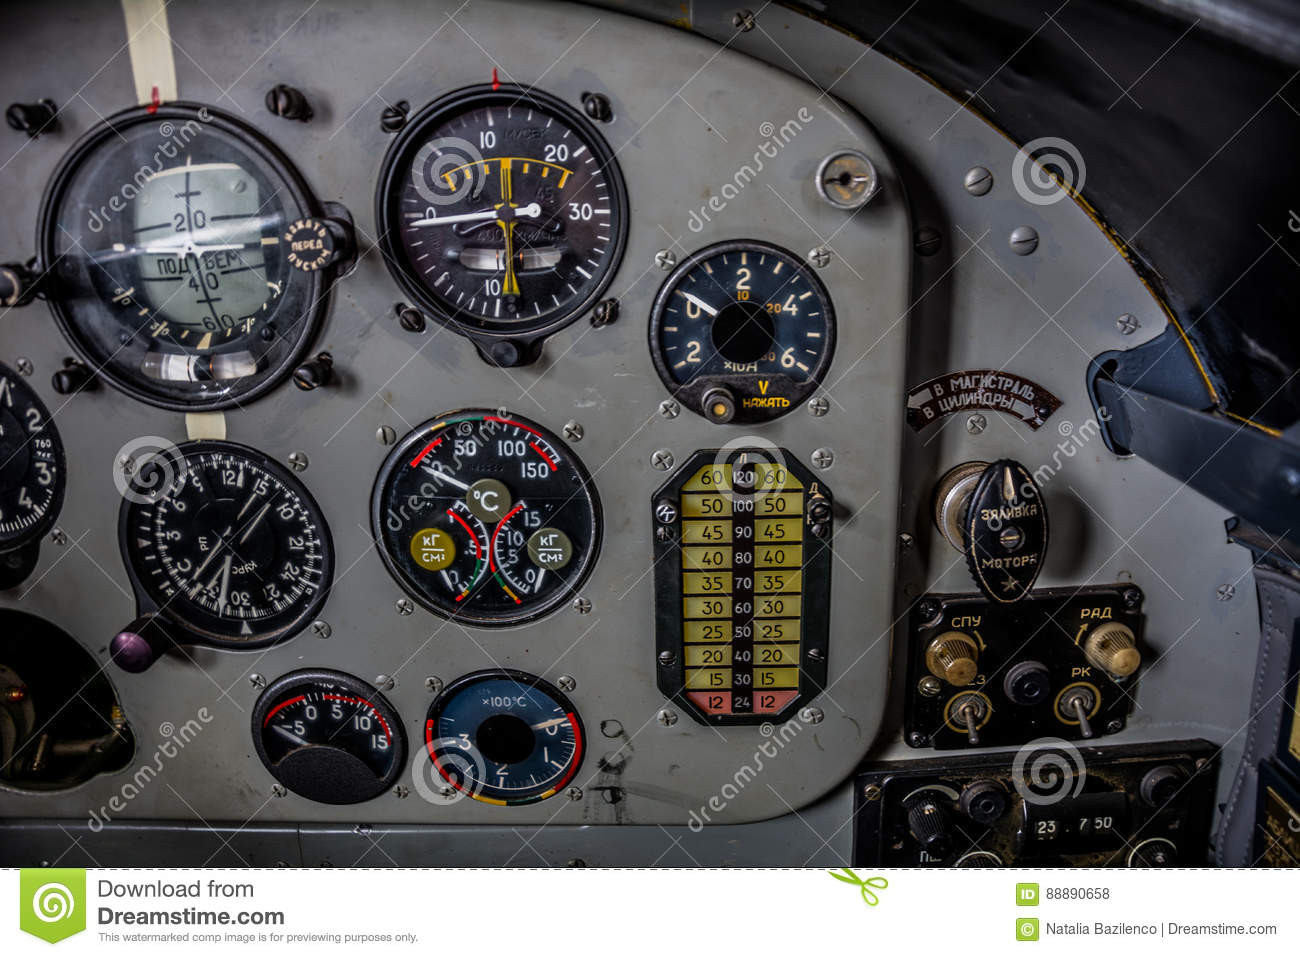 Aircraft Instrument Panel : Instrument panel control aircraft royalty free stock image